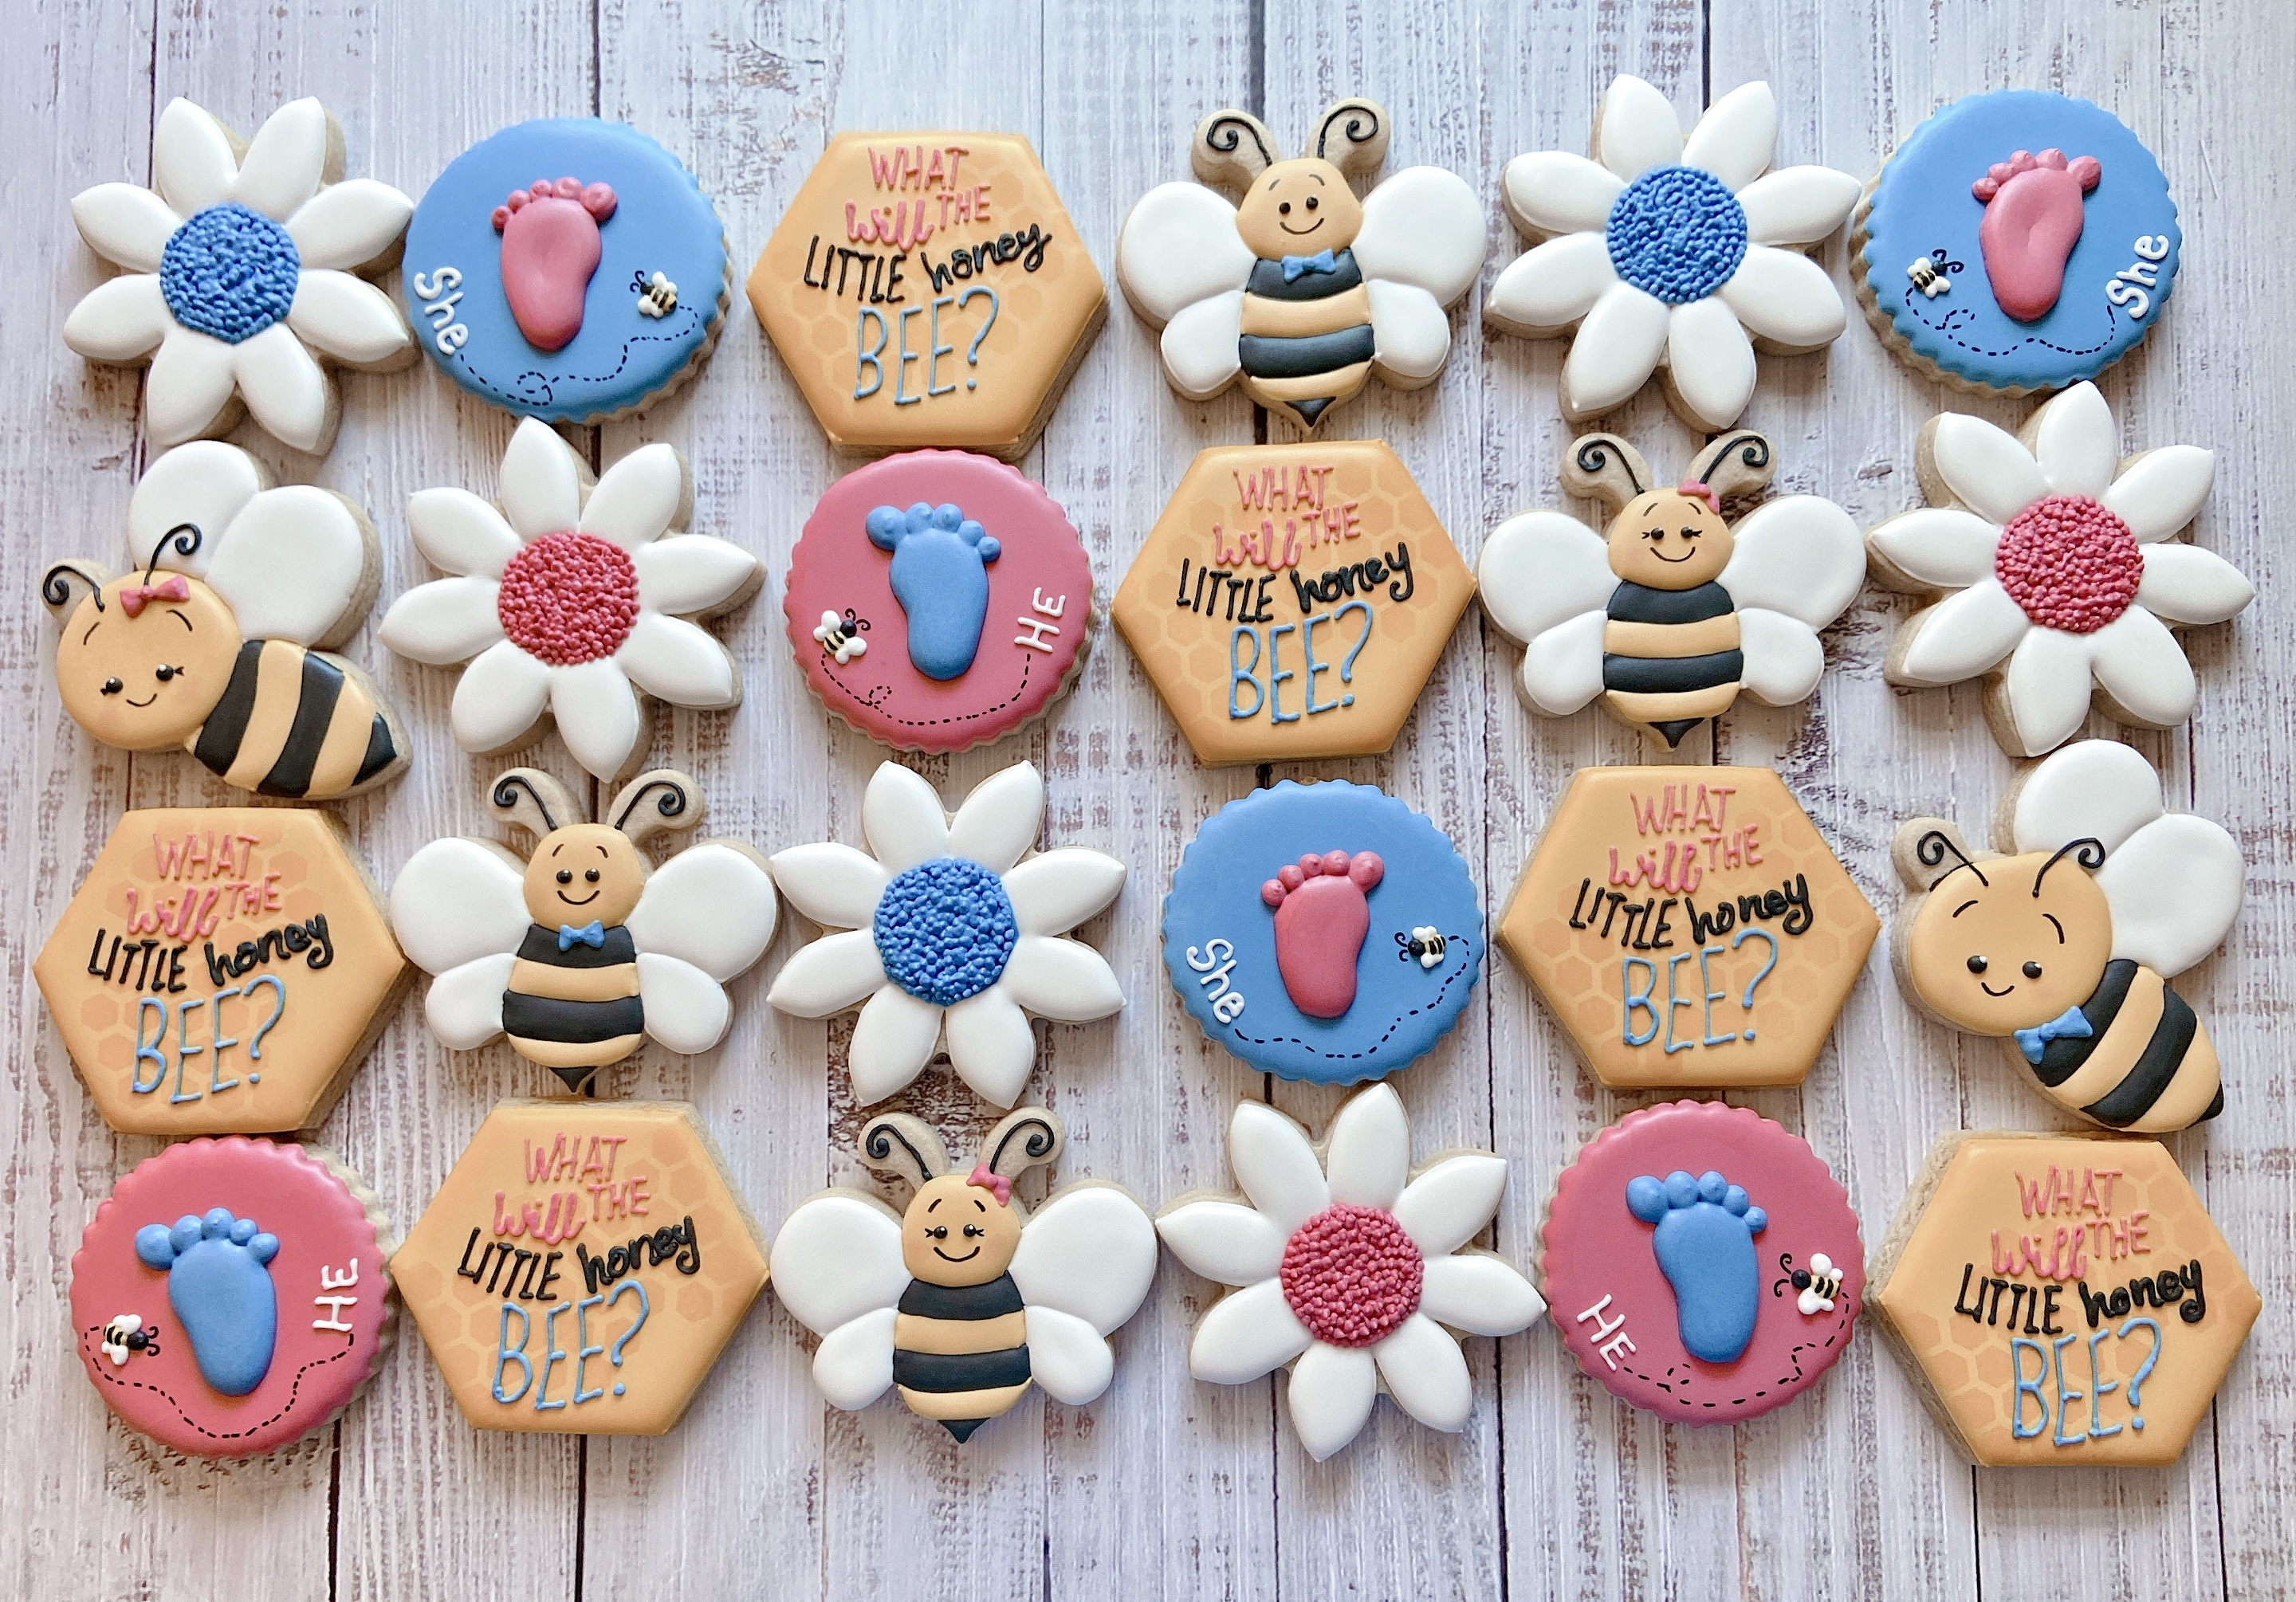 What Will Baby Bee? Gender Reveal Cookies